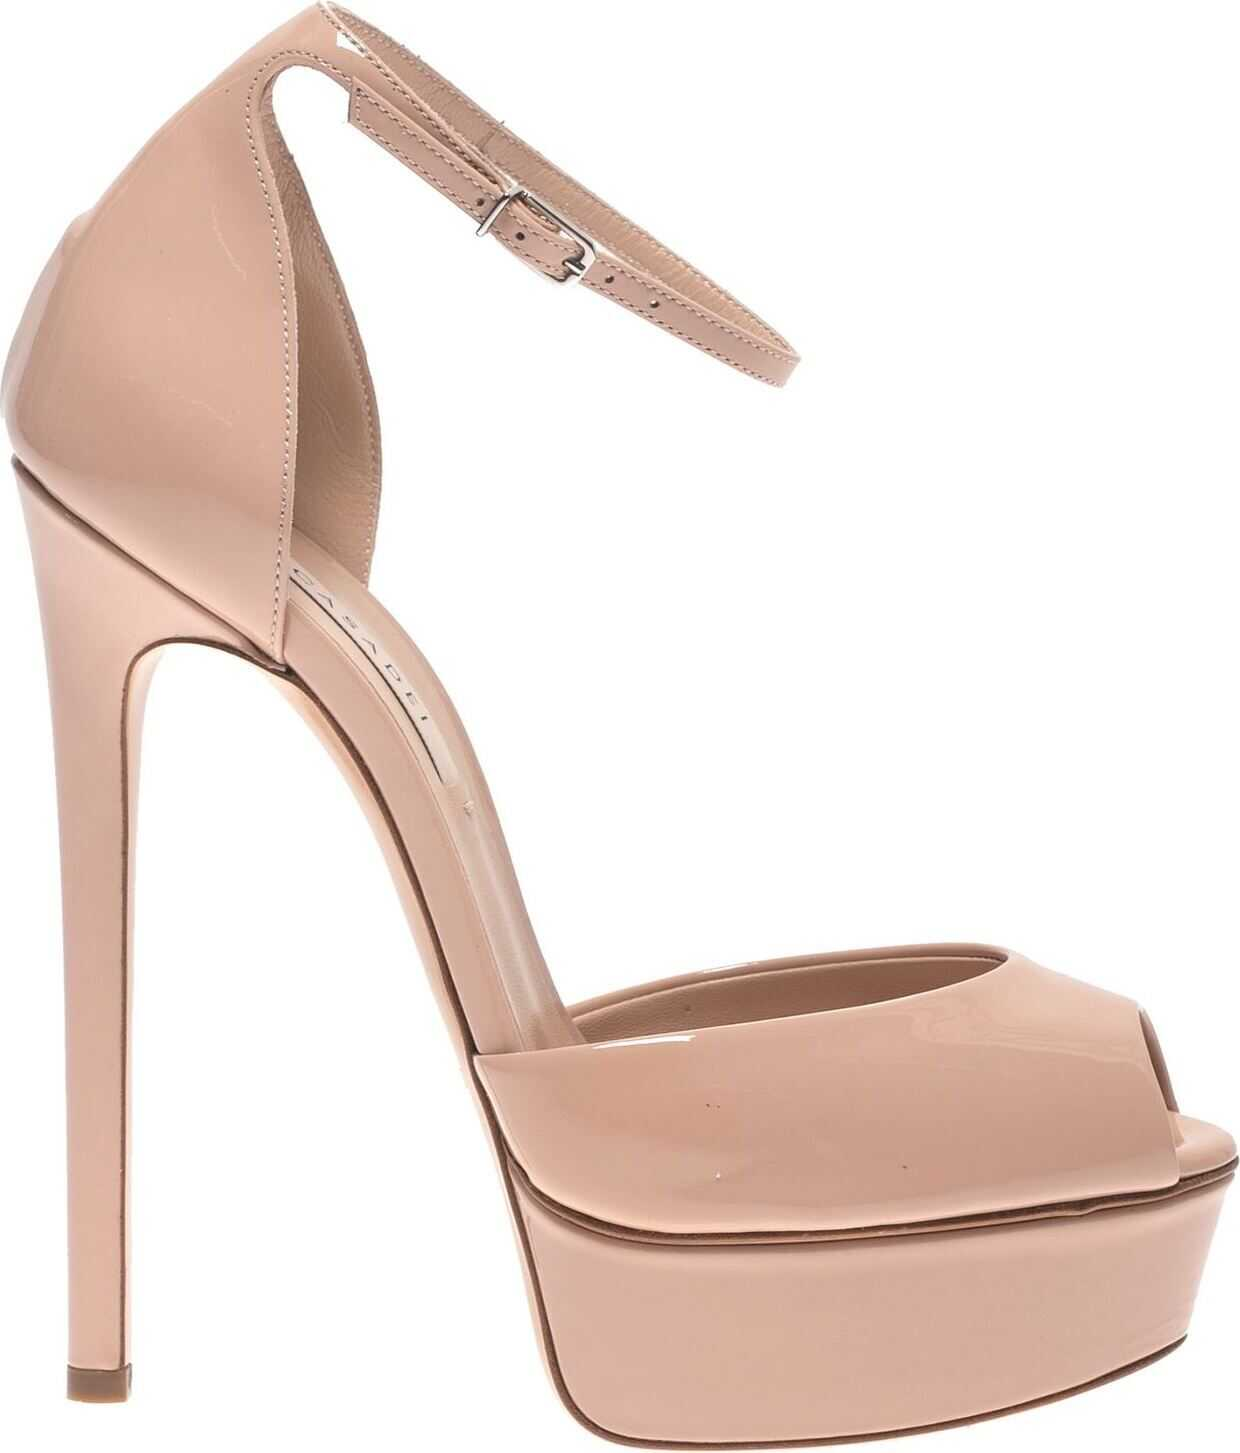 Casadei Ankle Strap Pumps In Powder Pink Pink